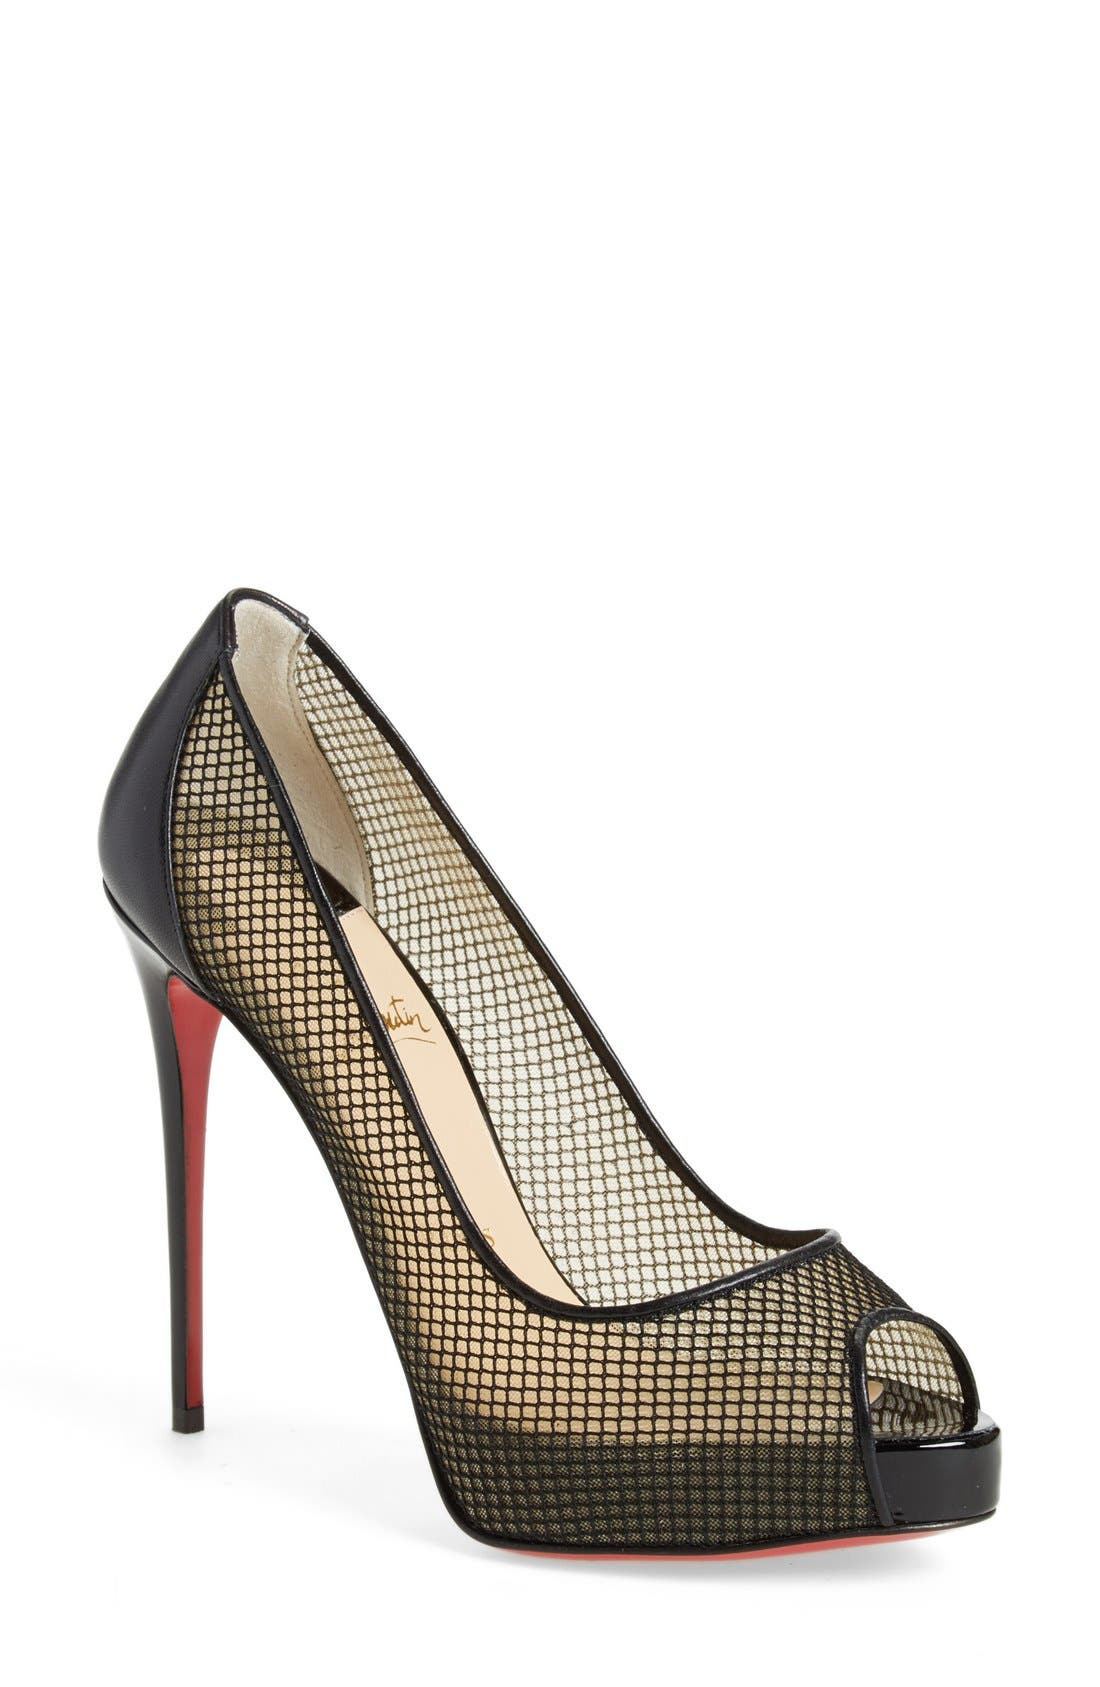 Alternate Image 1 Selected - Christian Louboutin 'Very Rete' Mesh Peeptoe Pump